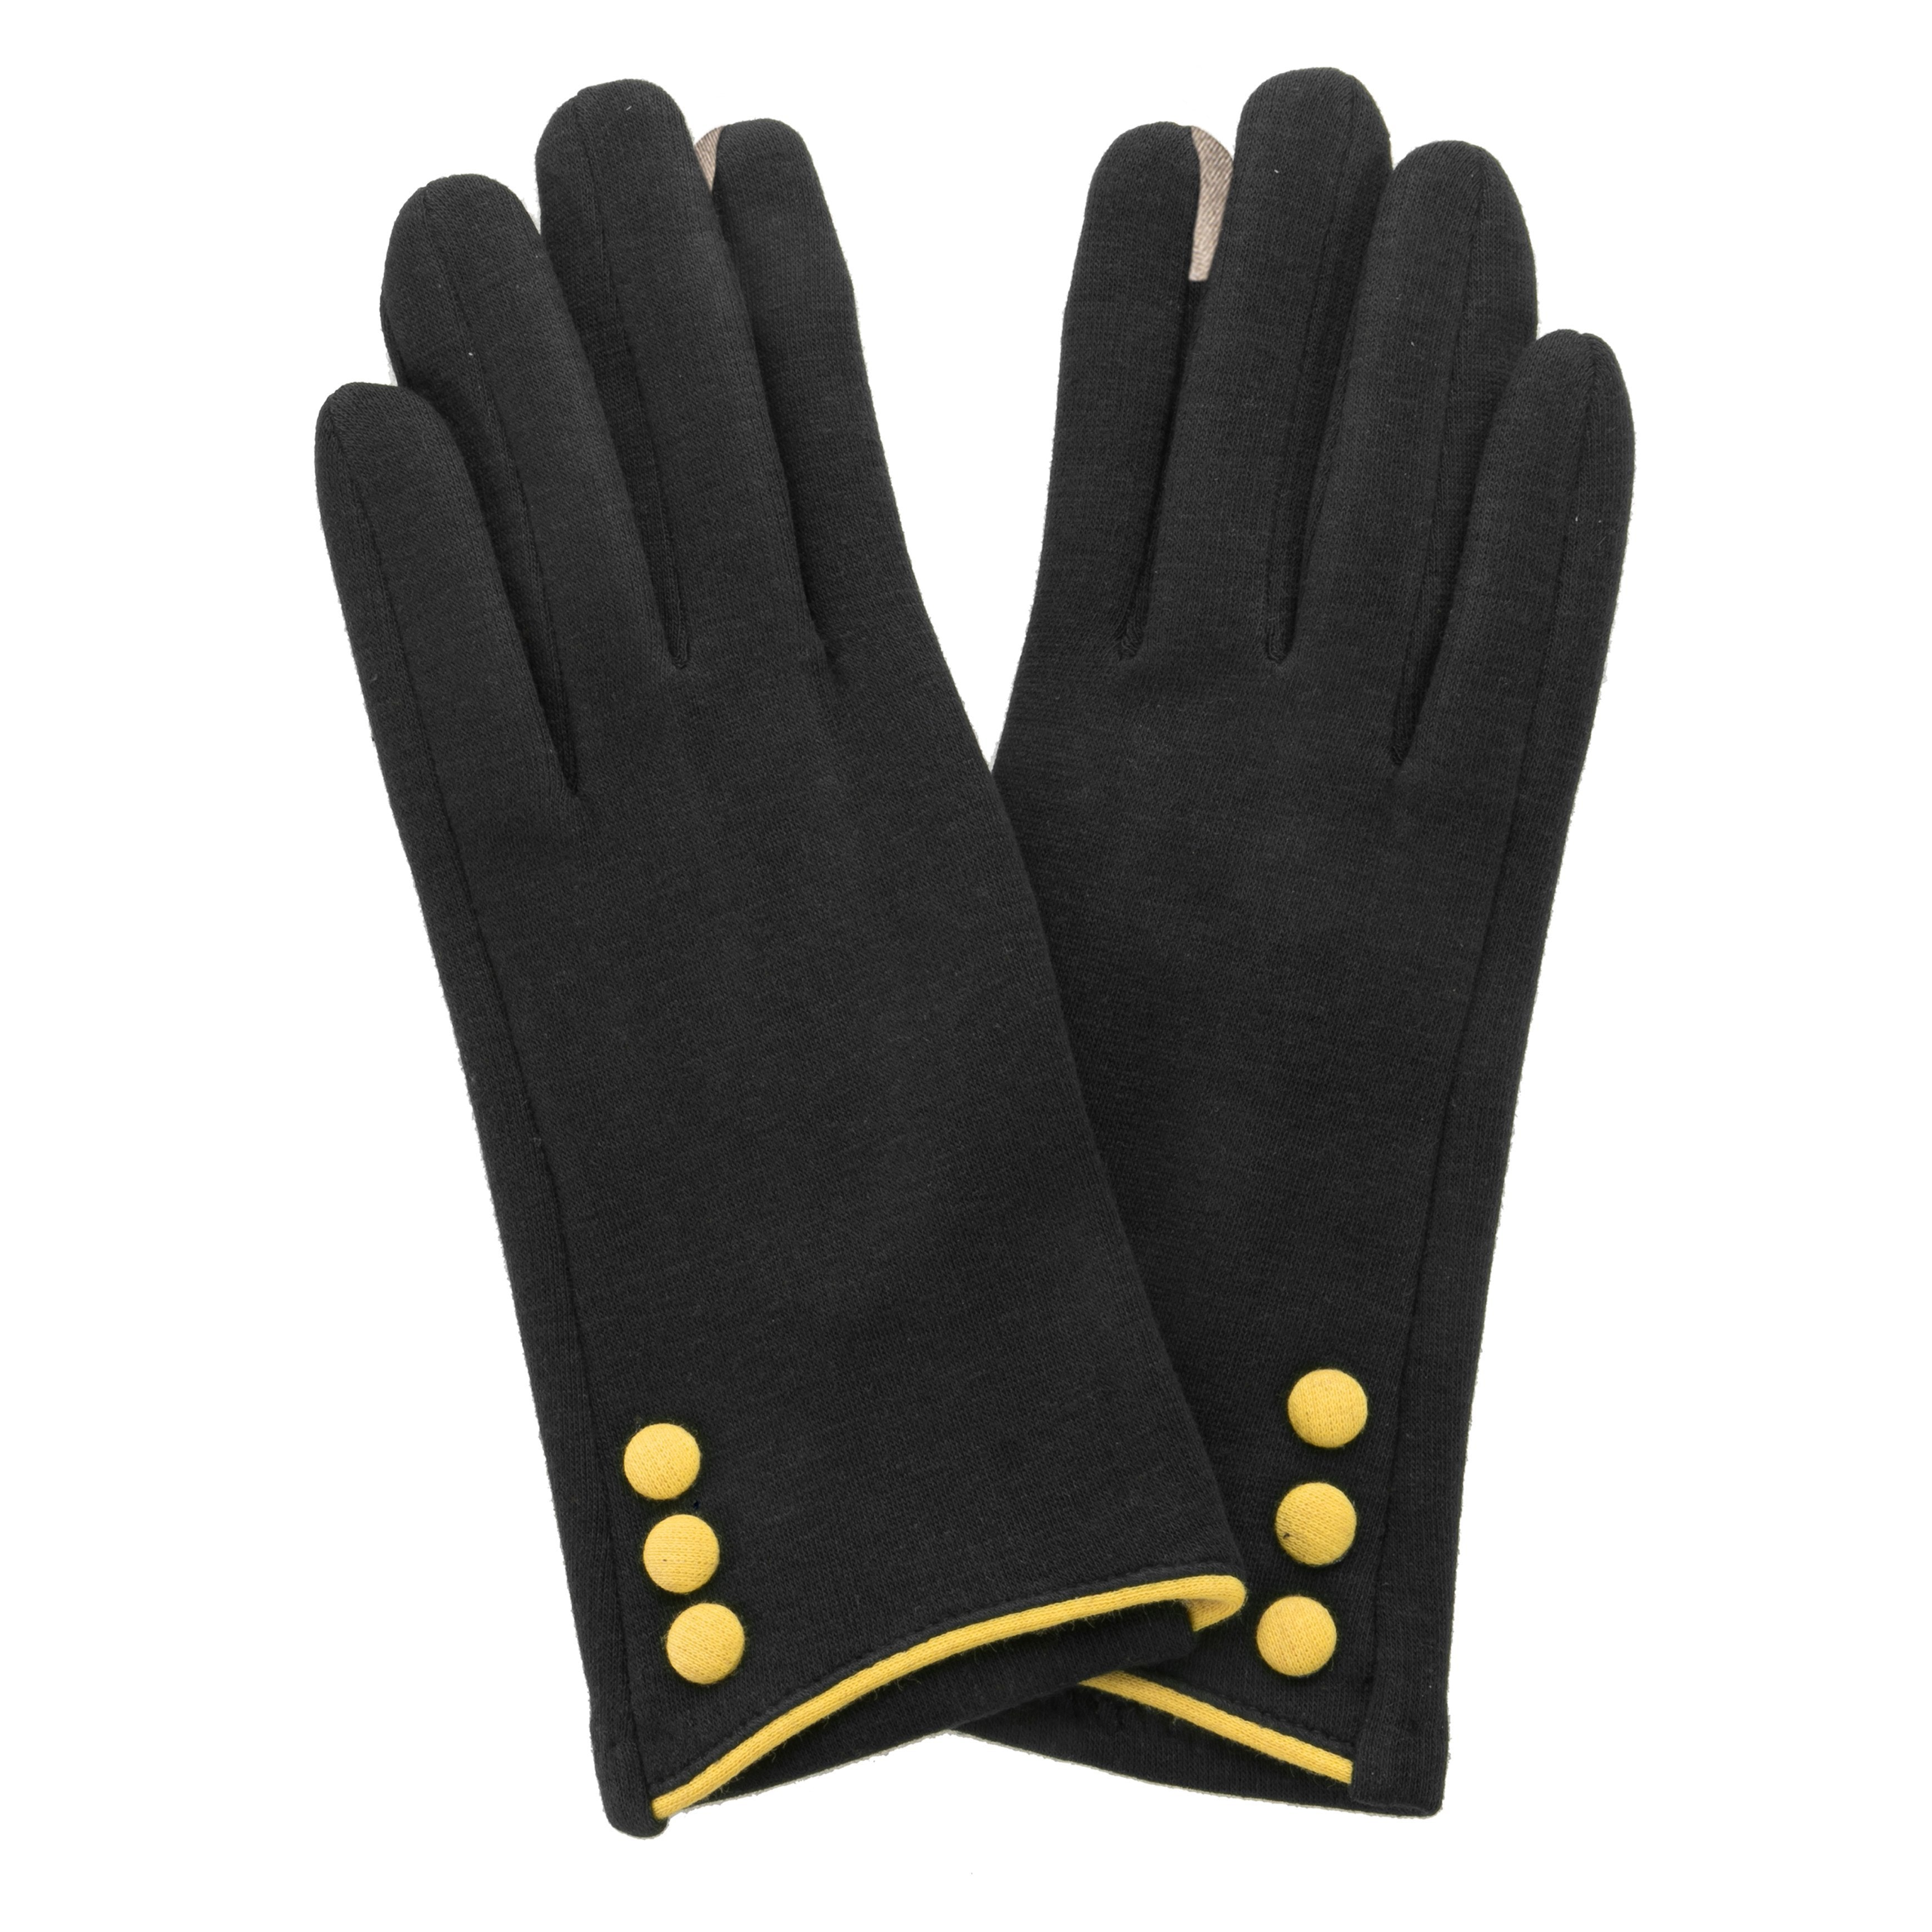 Black, smart screen fingertip gloves with yellow buttons and trim.